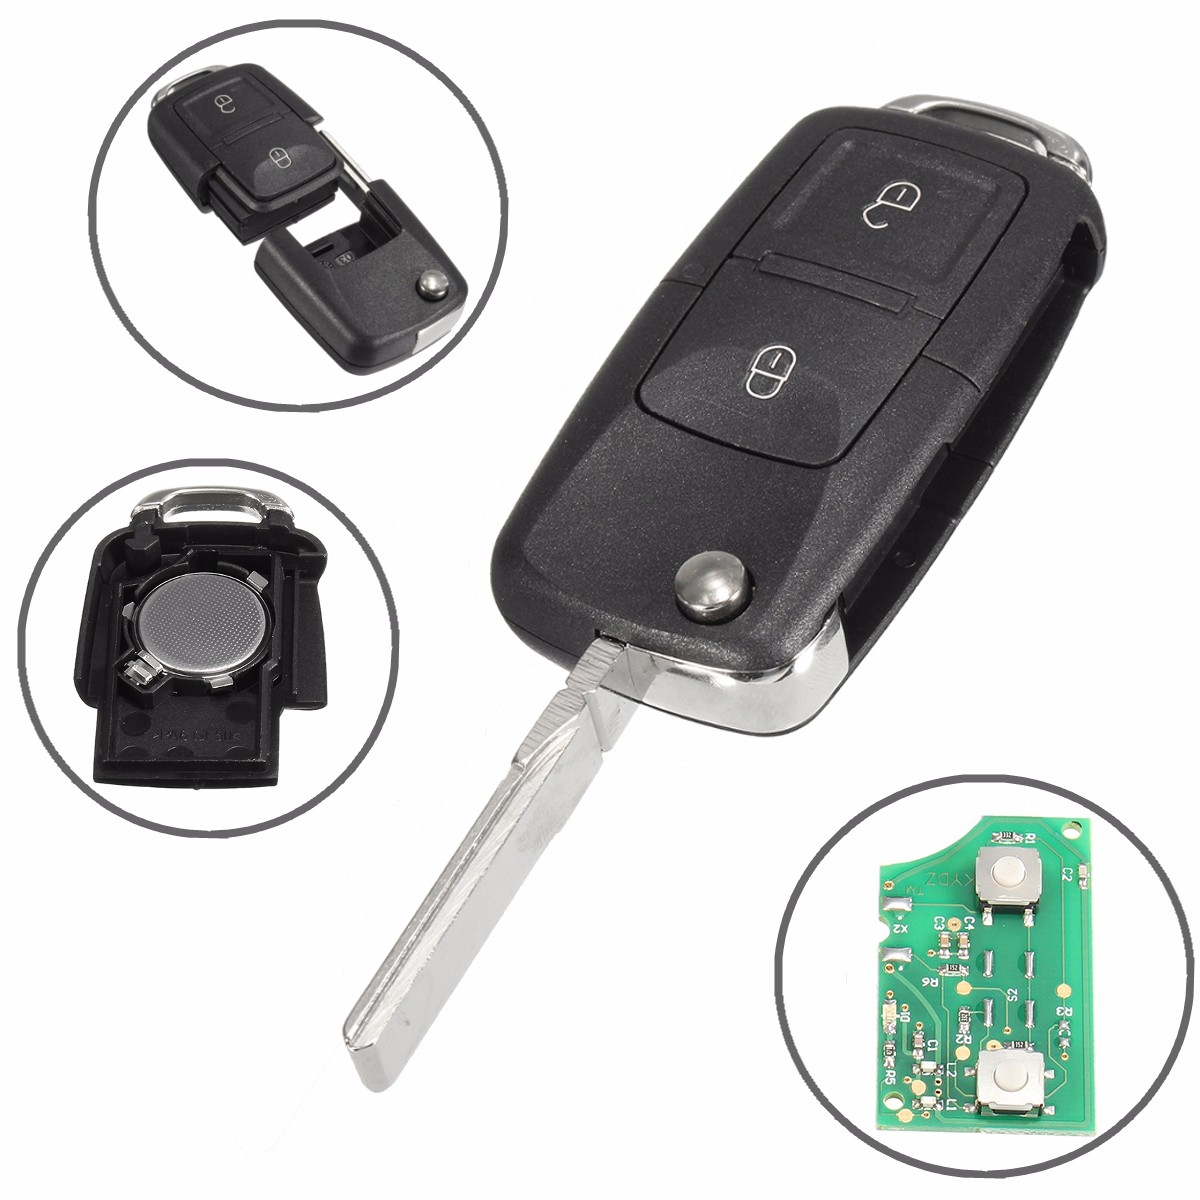 2 Button Flip Remote Key Fob Case 433MHz ID48 Chips For VW /Beetle /Bora /Golf /Passat /Polo /Transporter T5 1J0 959 753 AG